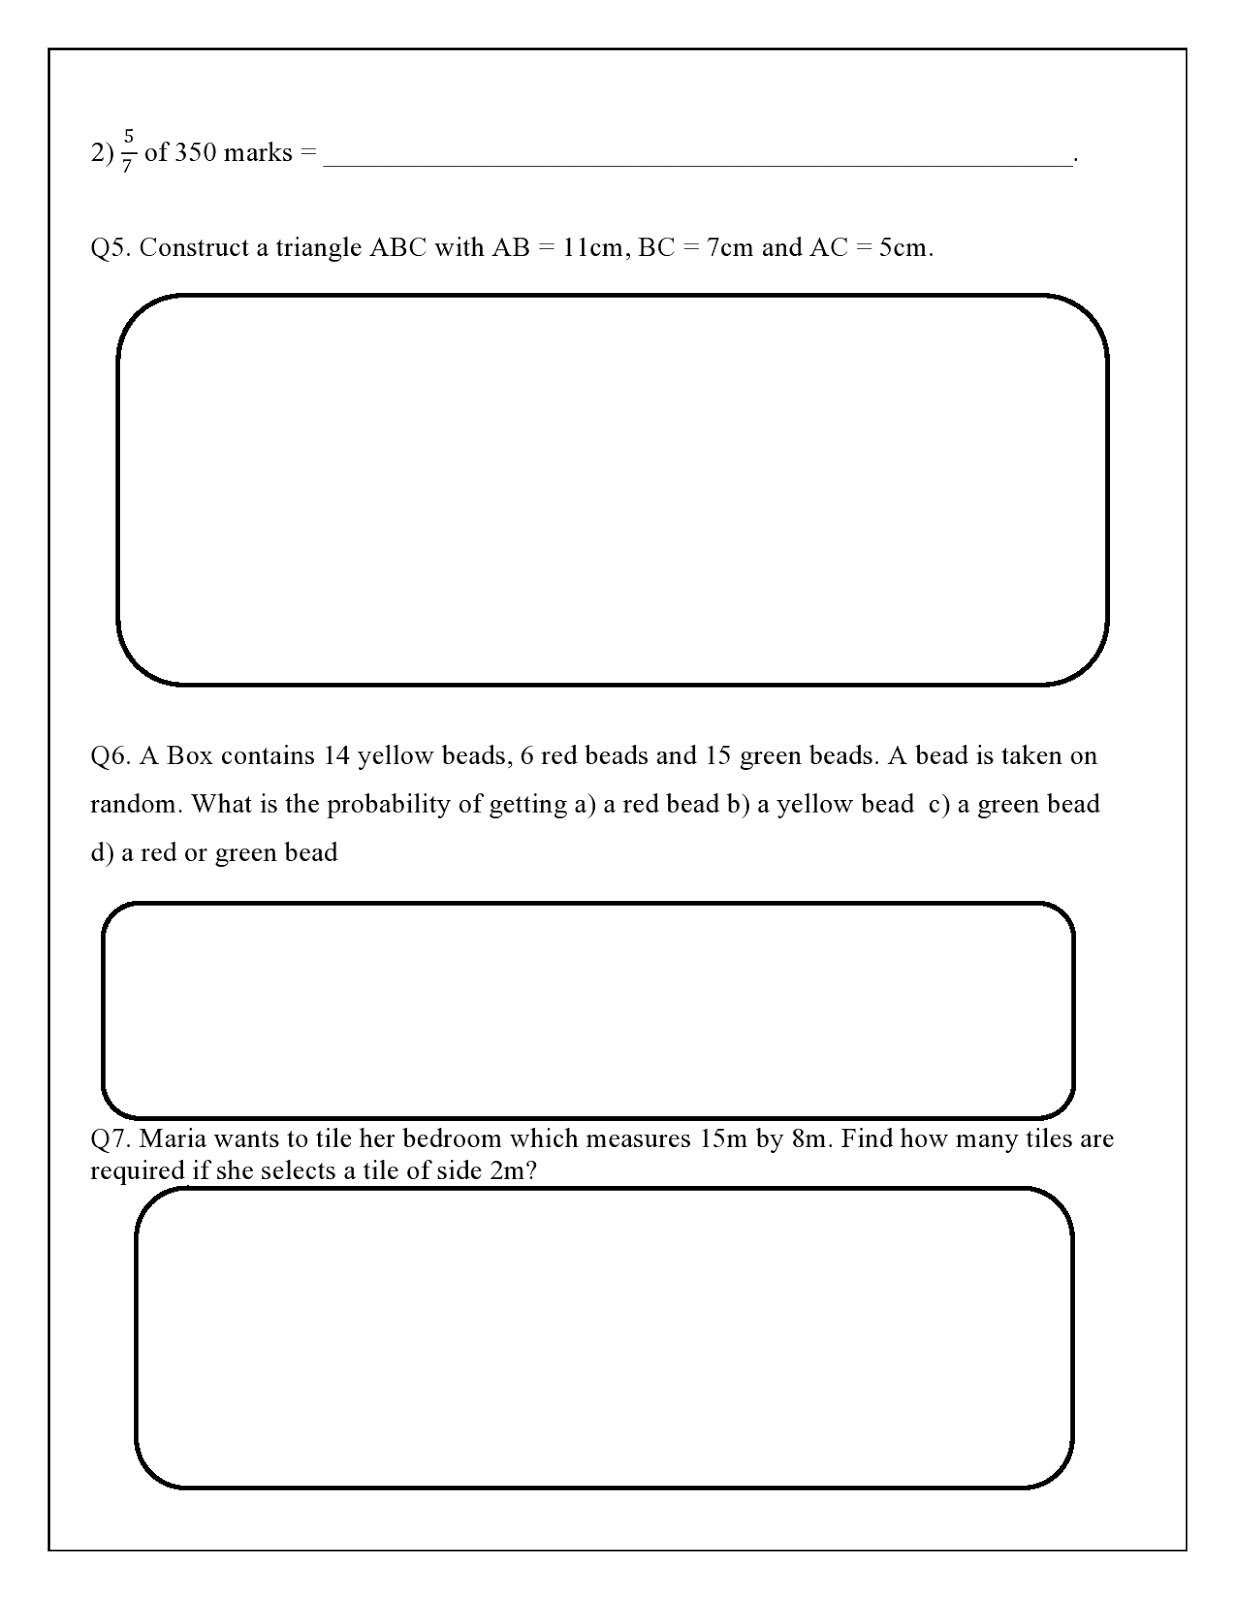 small resolution of WORLD SCHOOL OMAN: Revision Worksheets for Grade 7 as on 09-05-2019